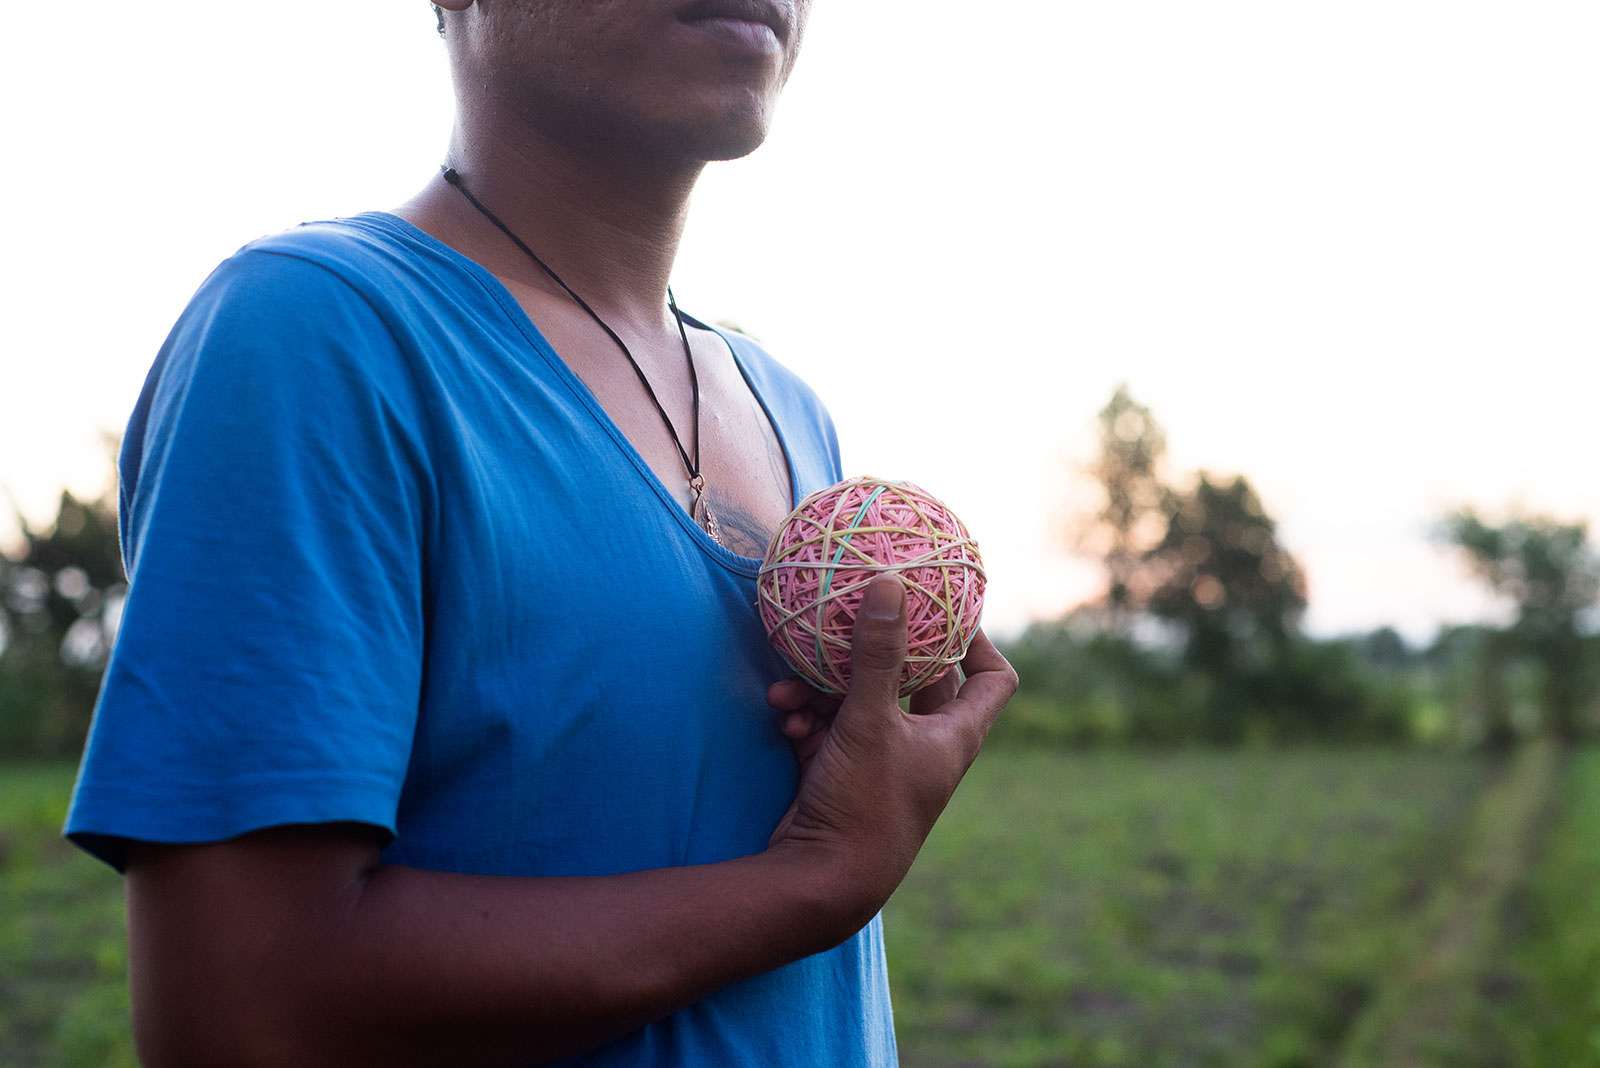 A man called Mawardi is shown holding a rubber bowl